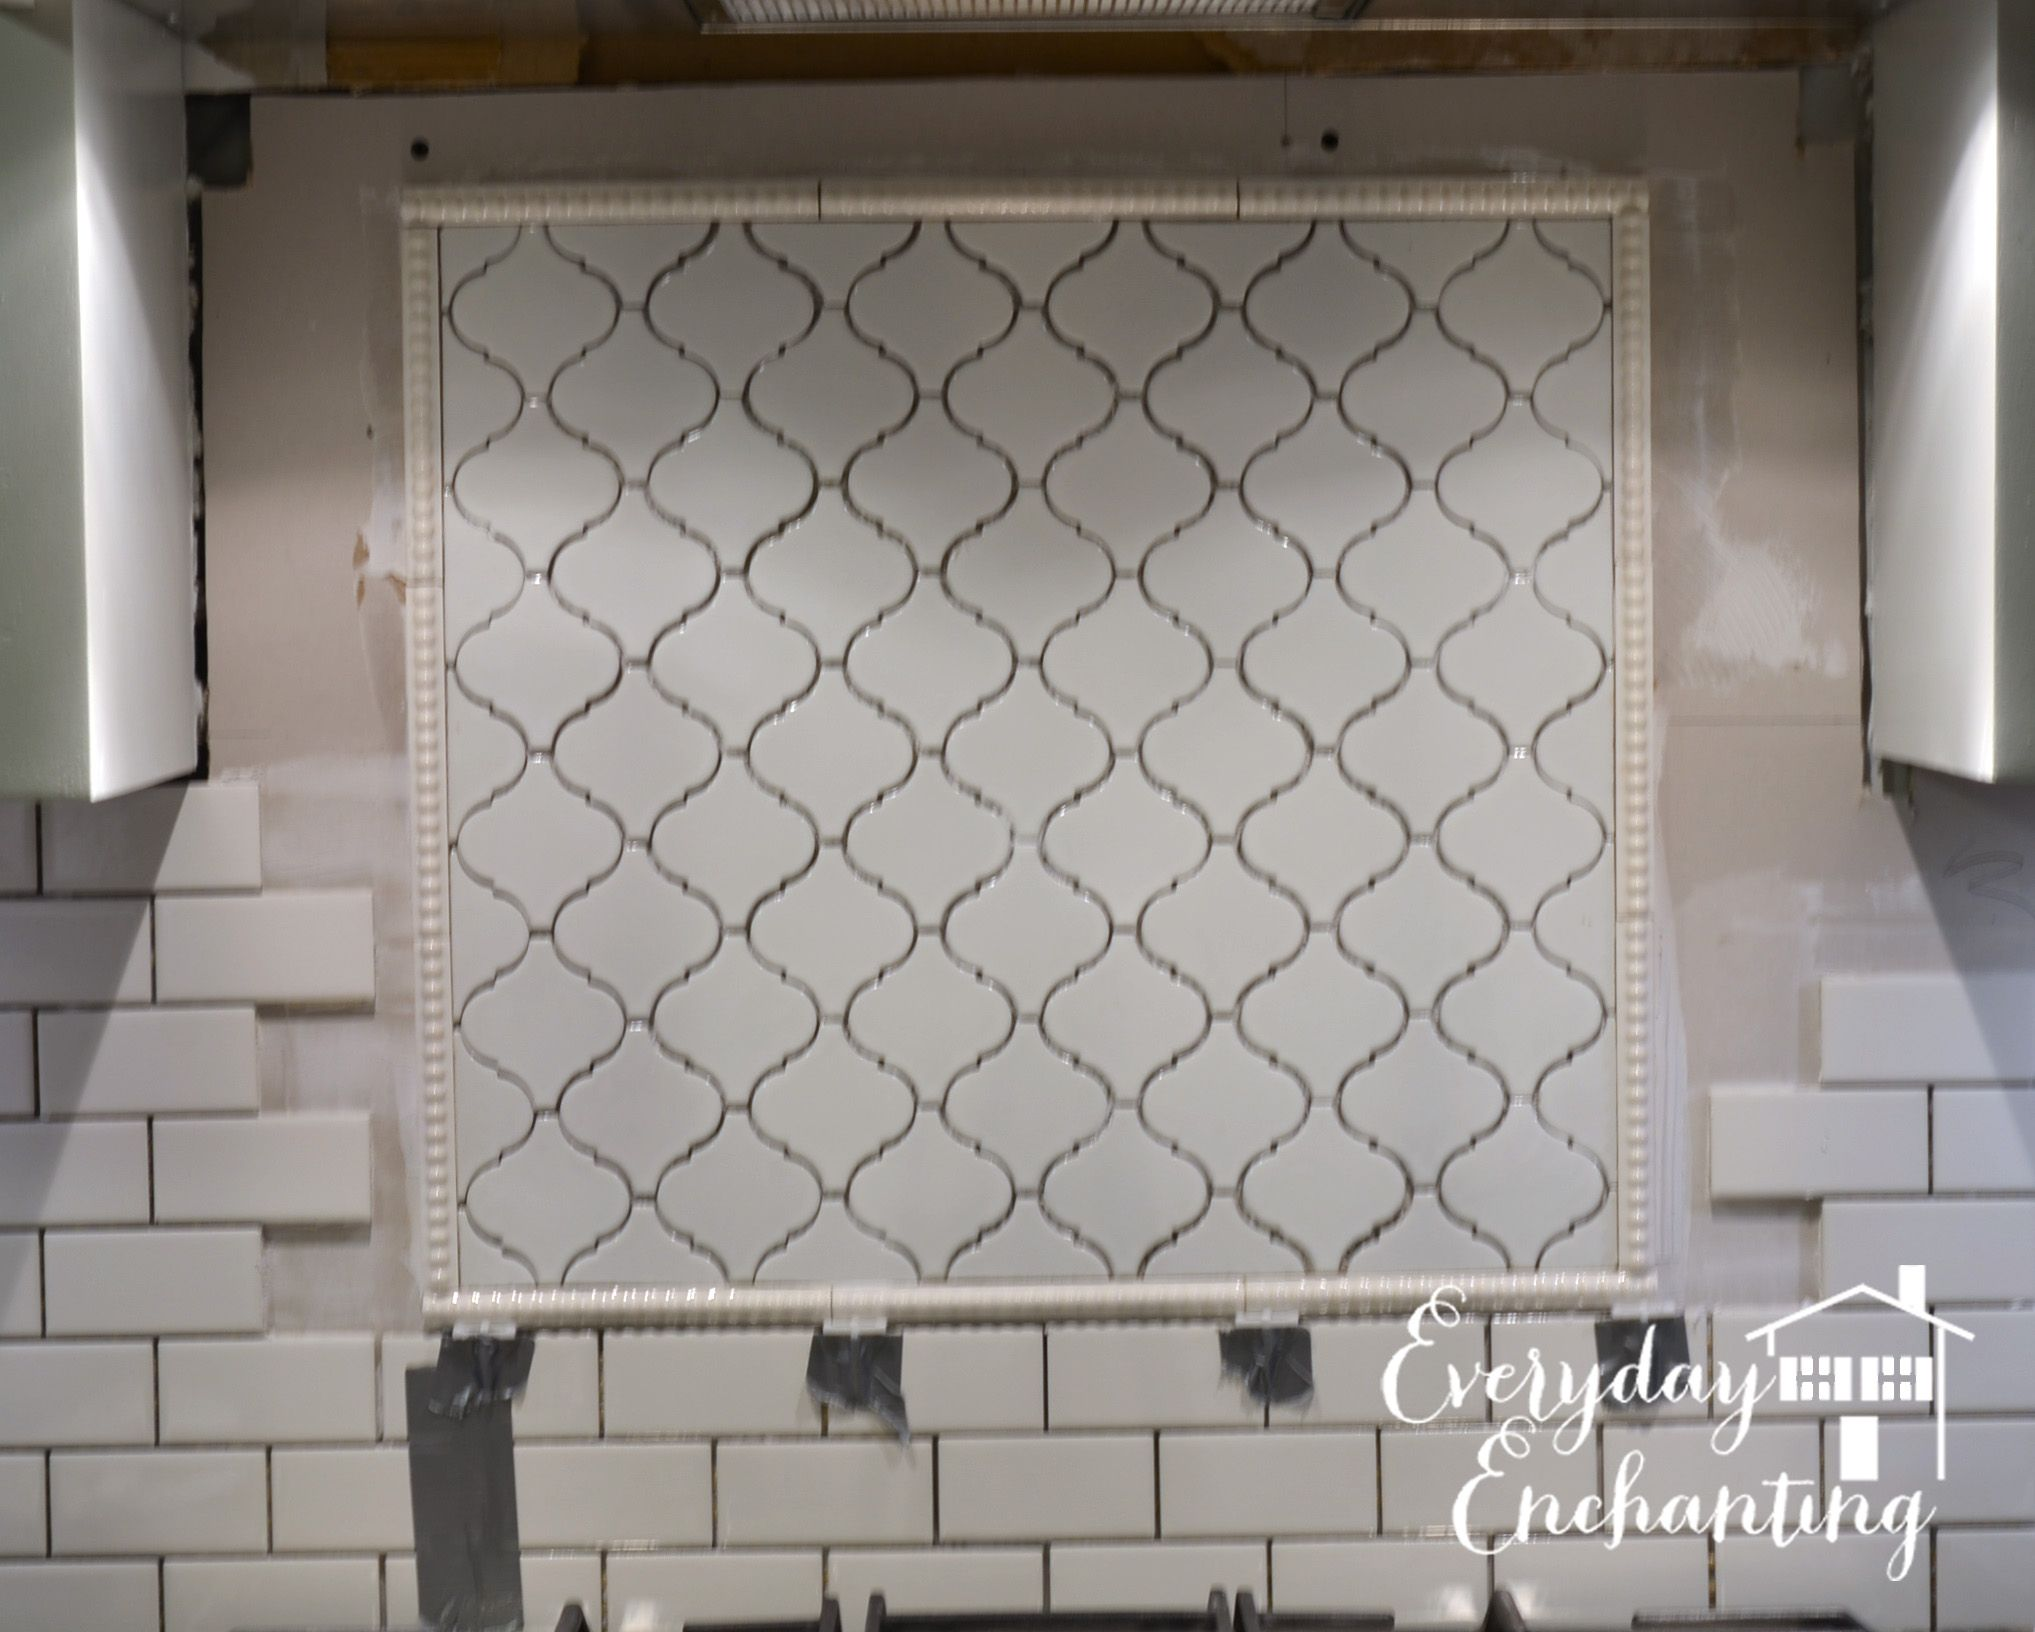 Backsplash Accent Ideas Arabesque Backsplash Accent Pinterest Subway Tiles